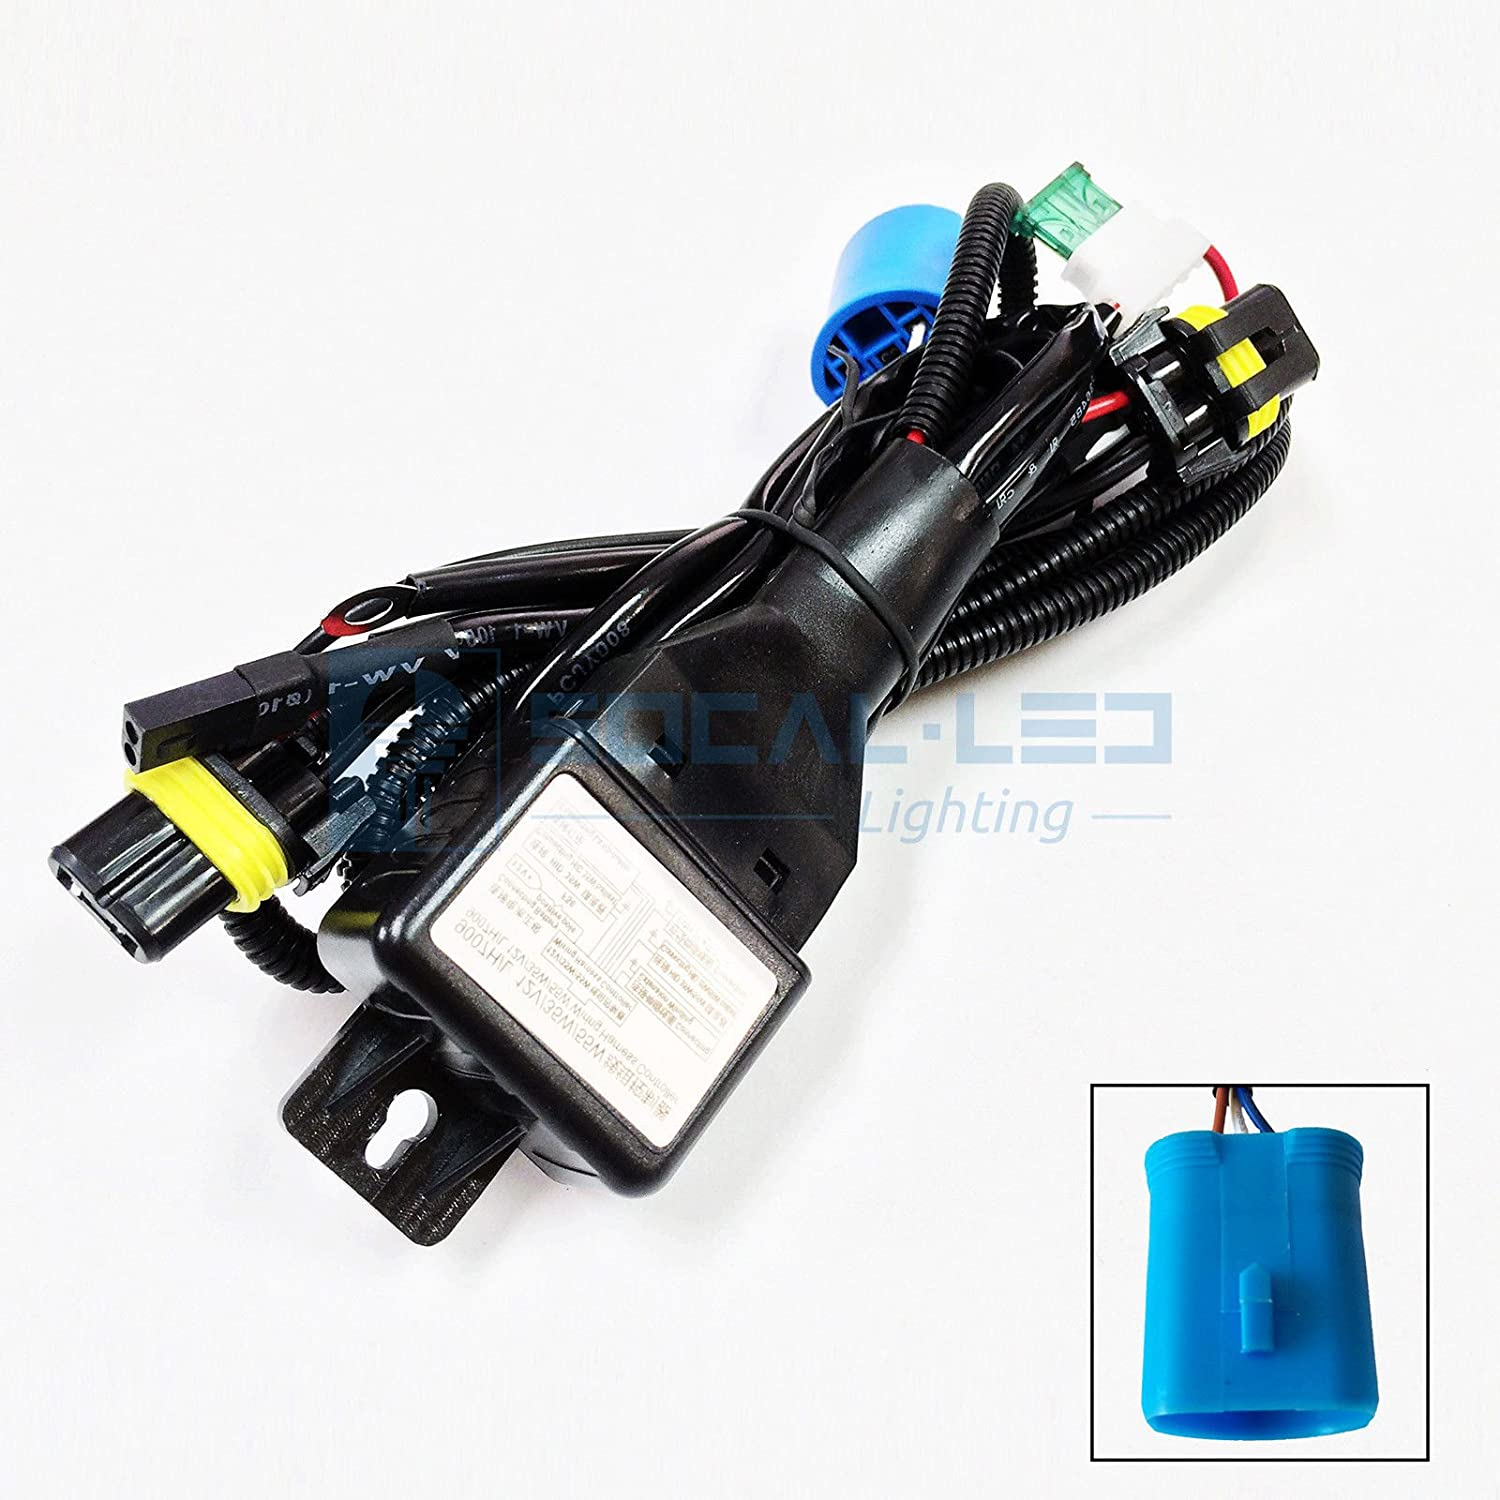 81iLl8cXonL._SL1500_ amazon com o nex hid relay harness 9007 (hb5 9004) 12v 35w 55w bi hid 12v 35w wiring harness controller at reclaimingppi.co